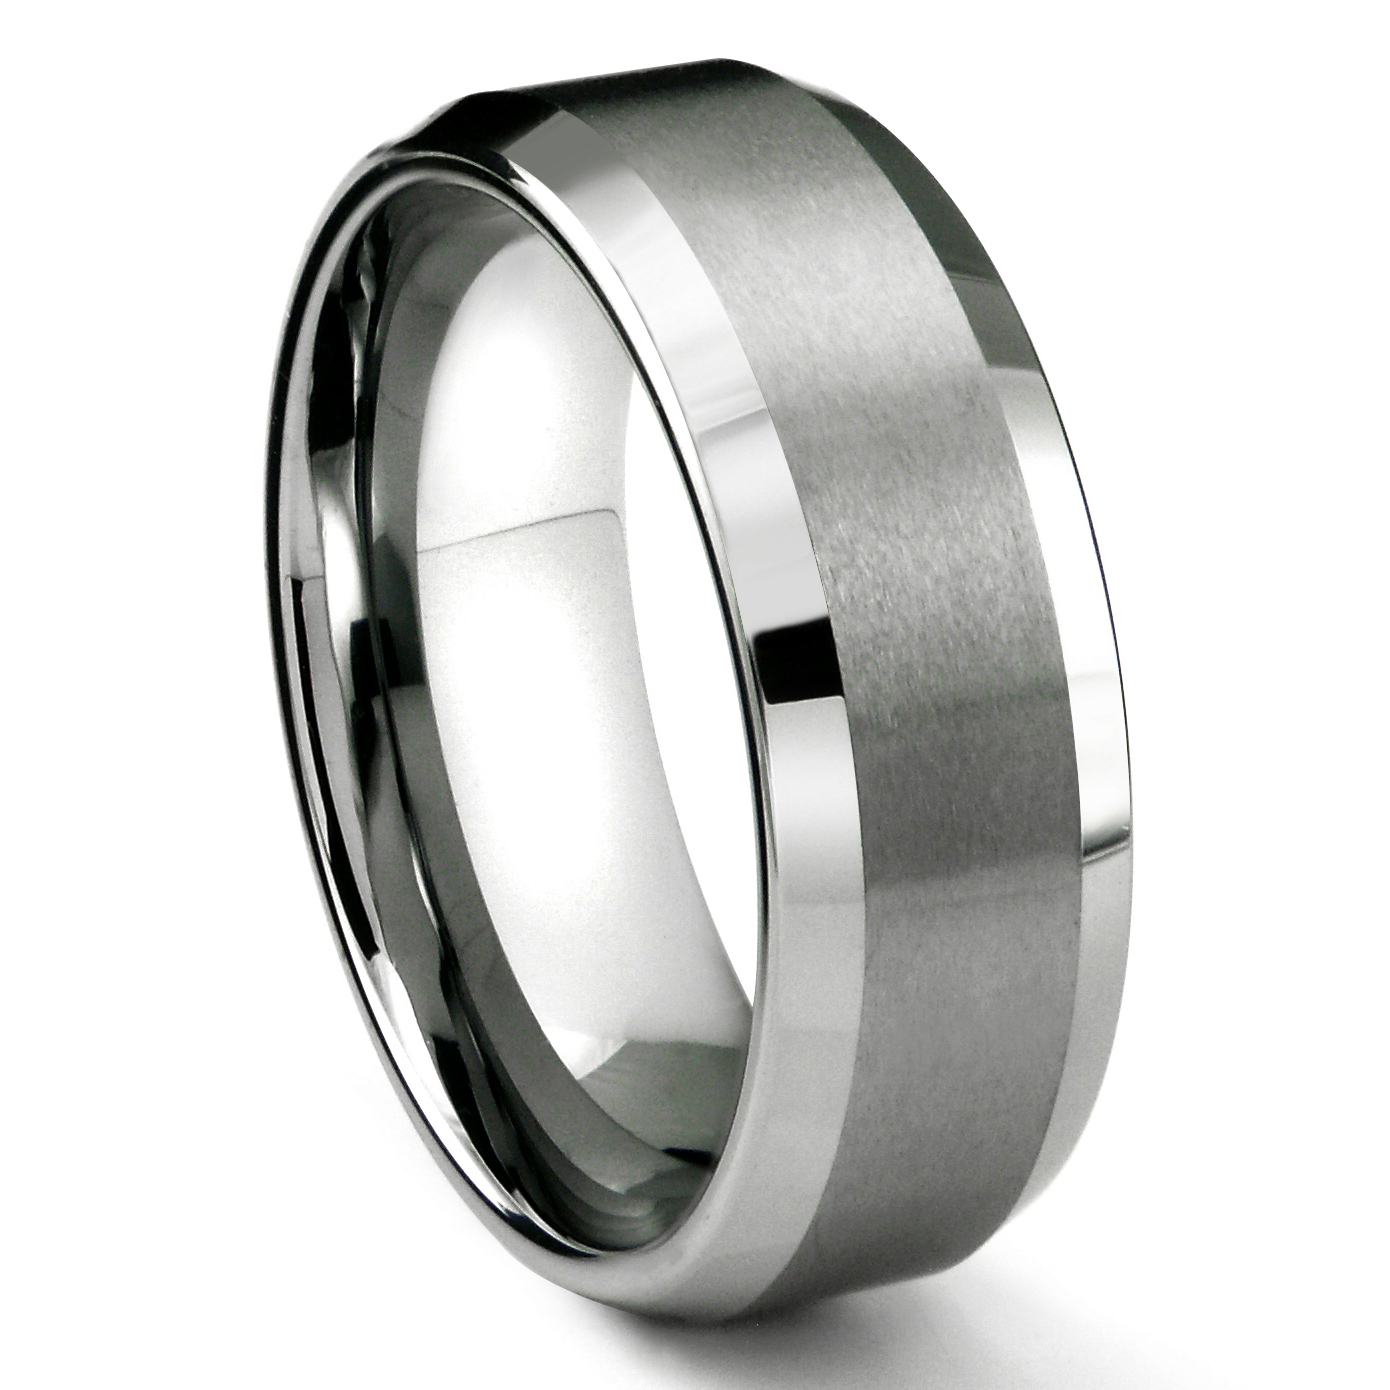 ring wedding titanium set itm sz to s band comfort sapphire tension bands blue fit mens ebay